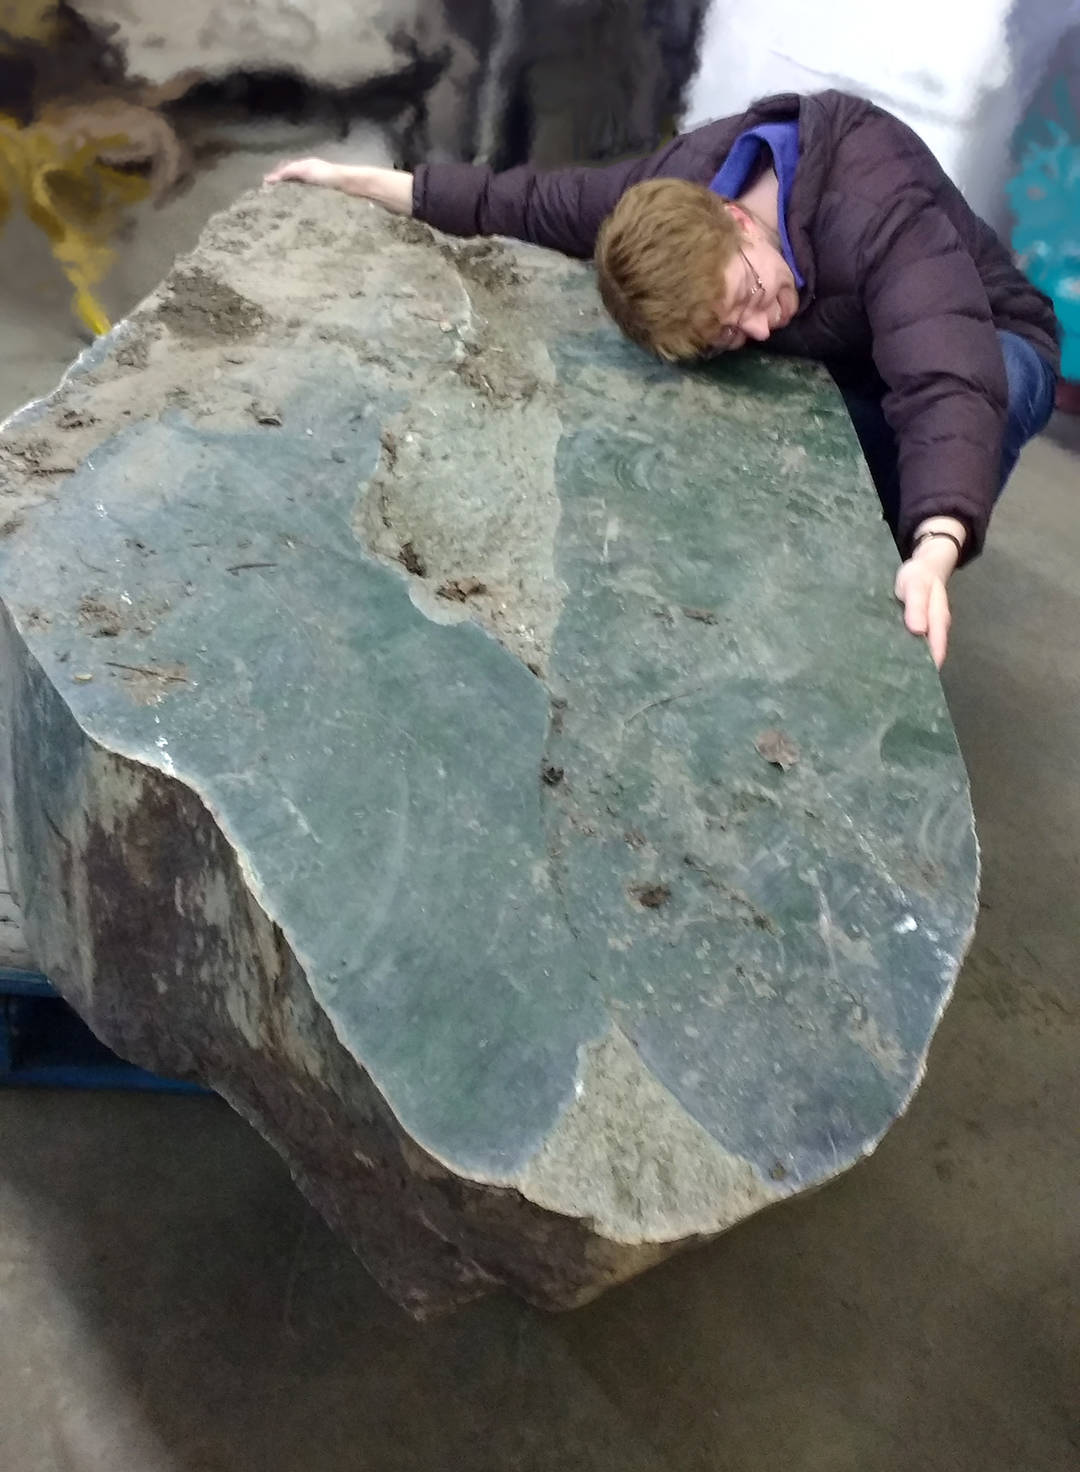 Heidi Roy of the Cariboo Jade Shop reunited with the jade boulder just after it was found. (Photo credit: Cariboo Jade Shop)